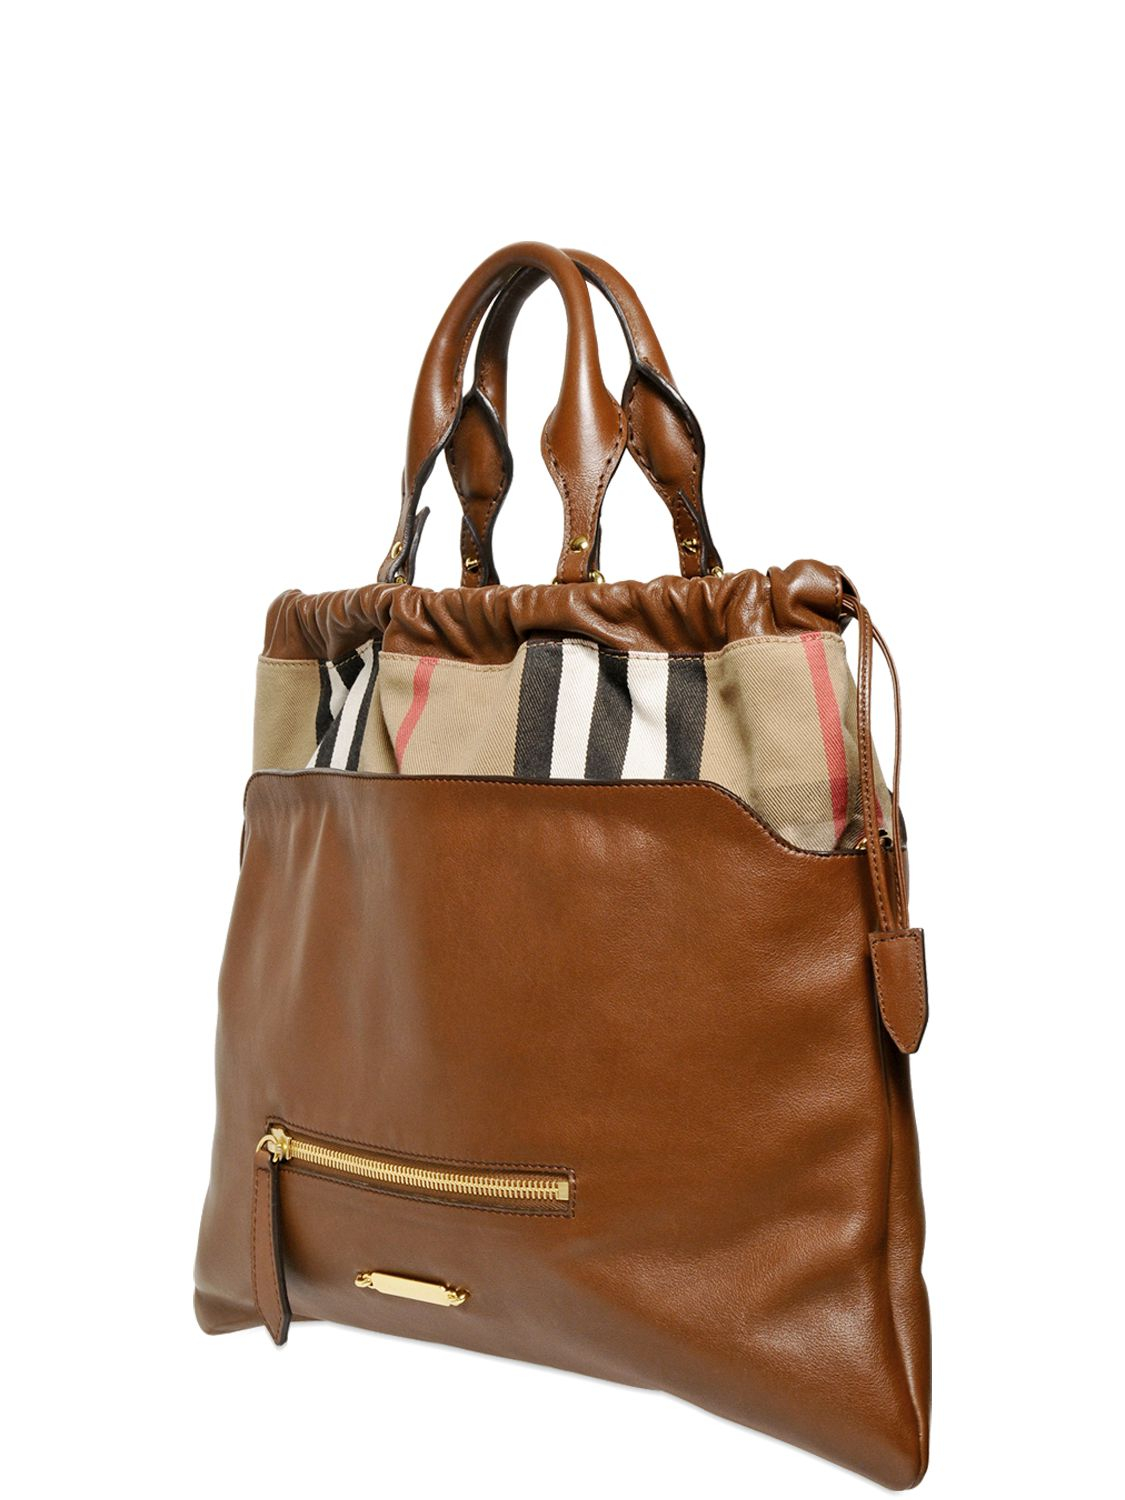 ddbebd6c7a25 Lyst - Burberry Big Crush Bridle House Check Bag in Brown